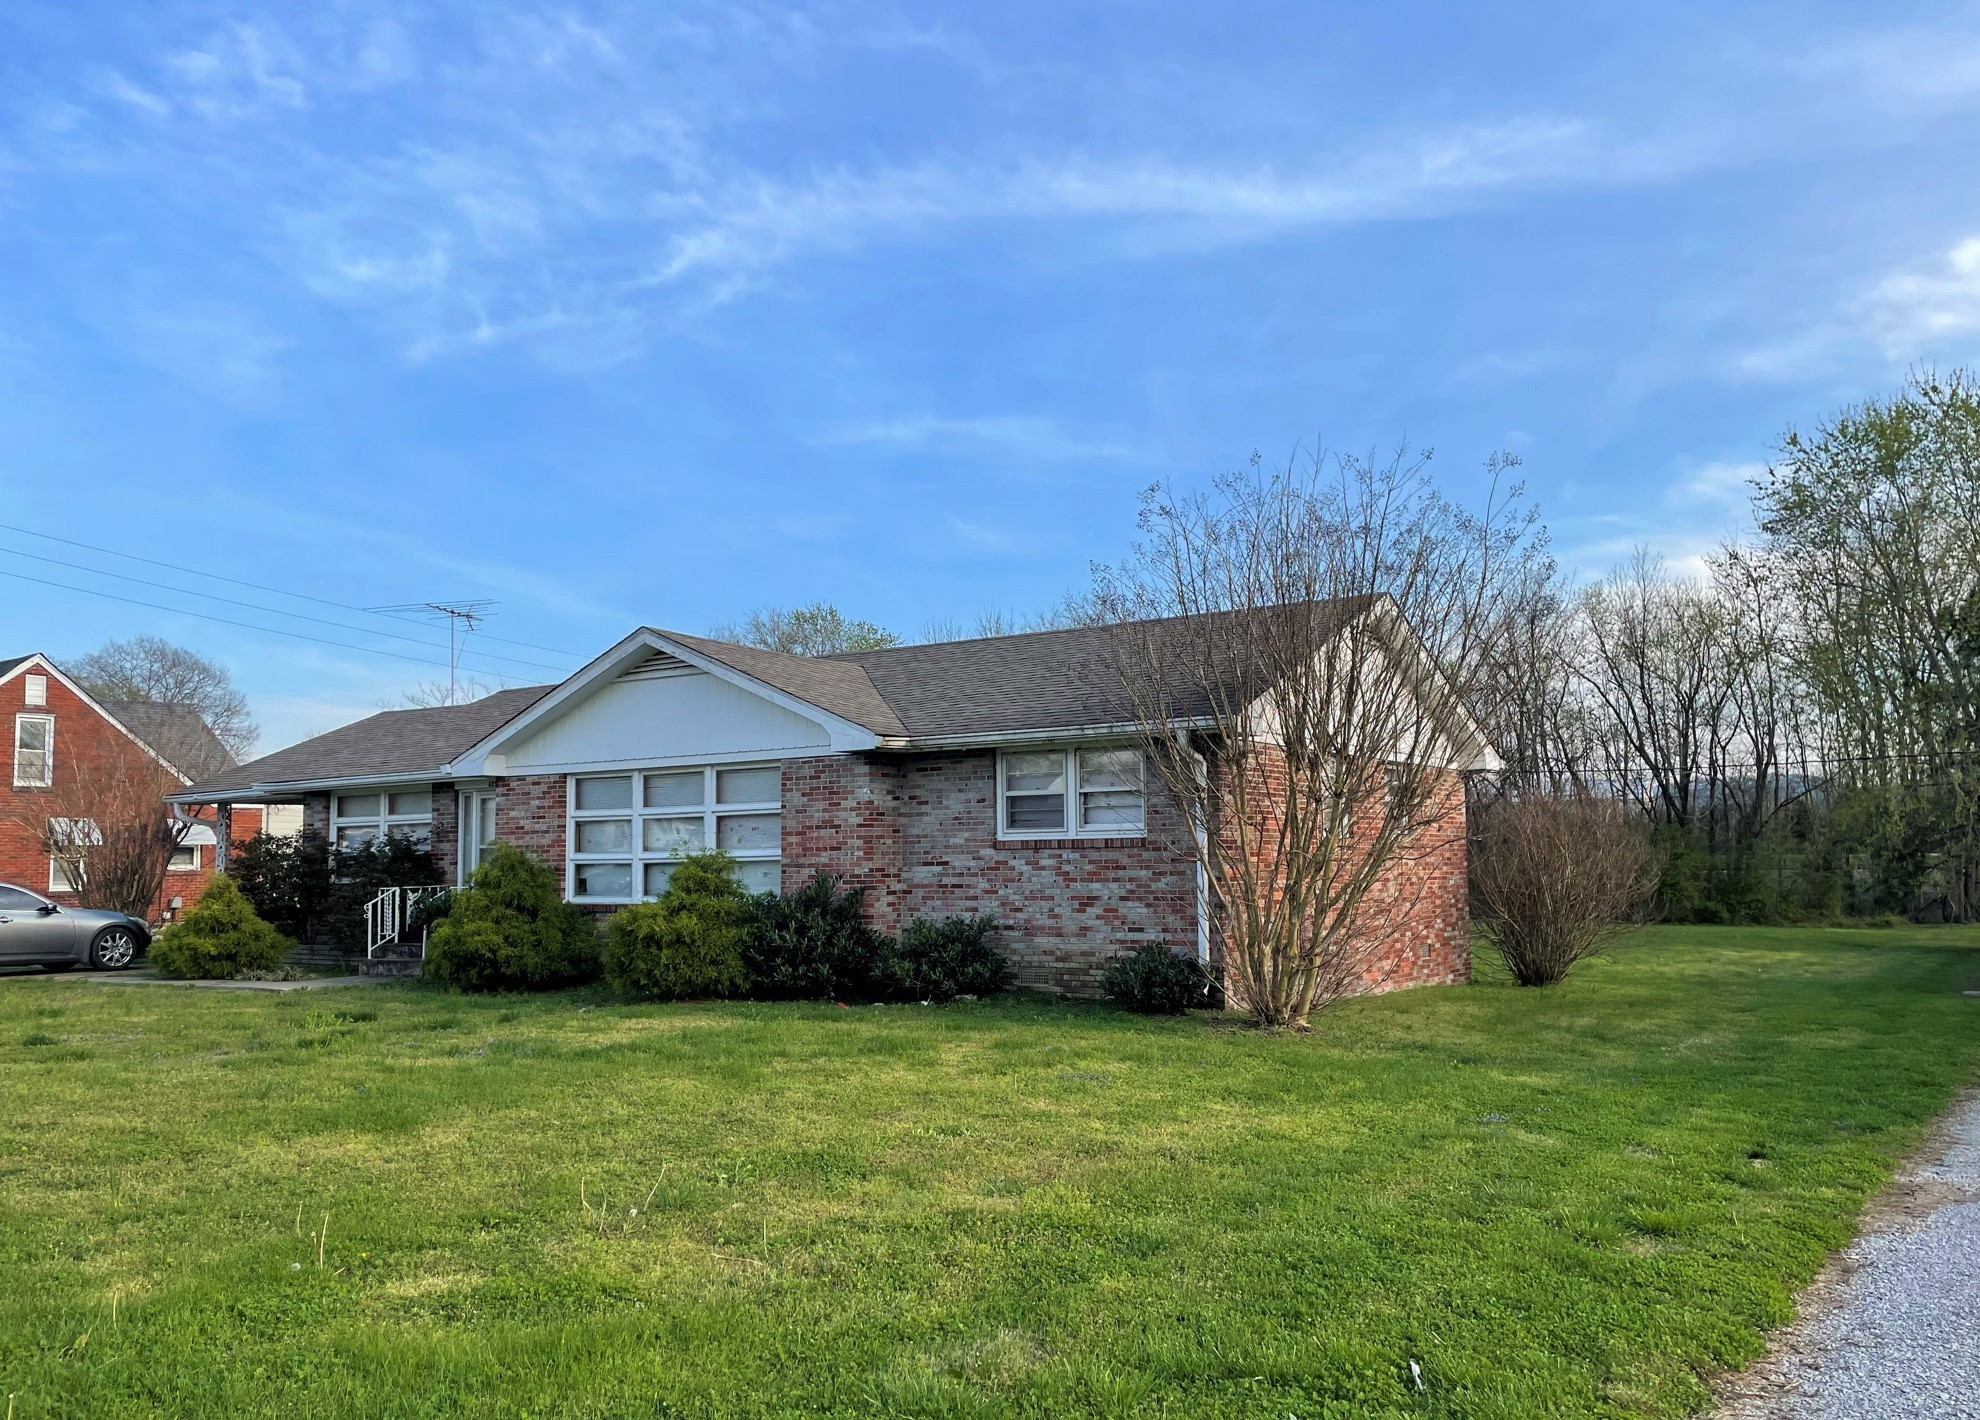 625 E Main St Property Photo - Watertown, TN real estate listing